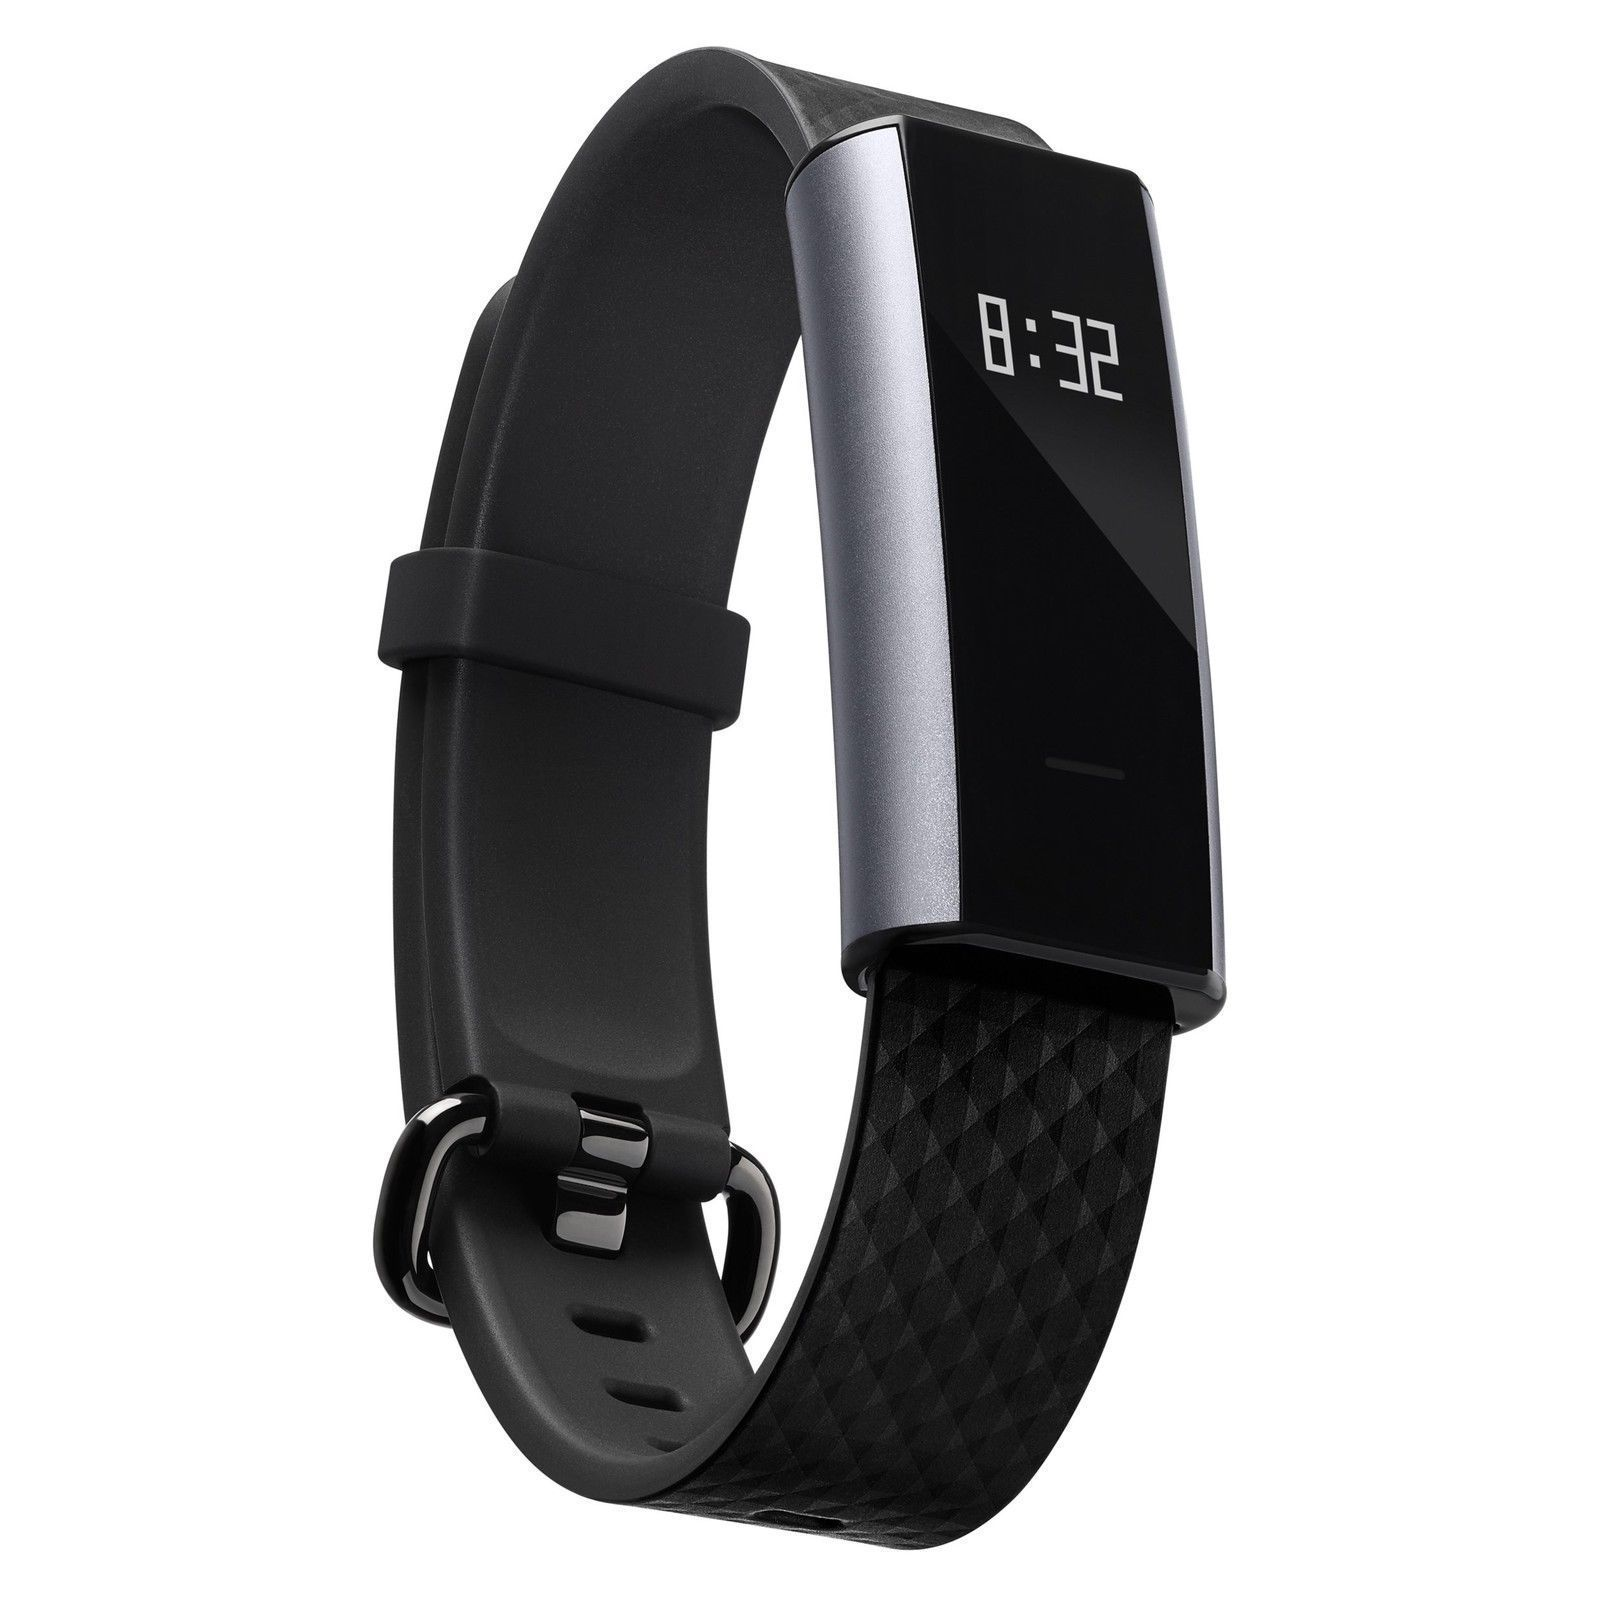 Amazfit A1603 Arc Activity Heart Rate & Sleep Tracker with OLED Touchscre... New